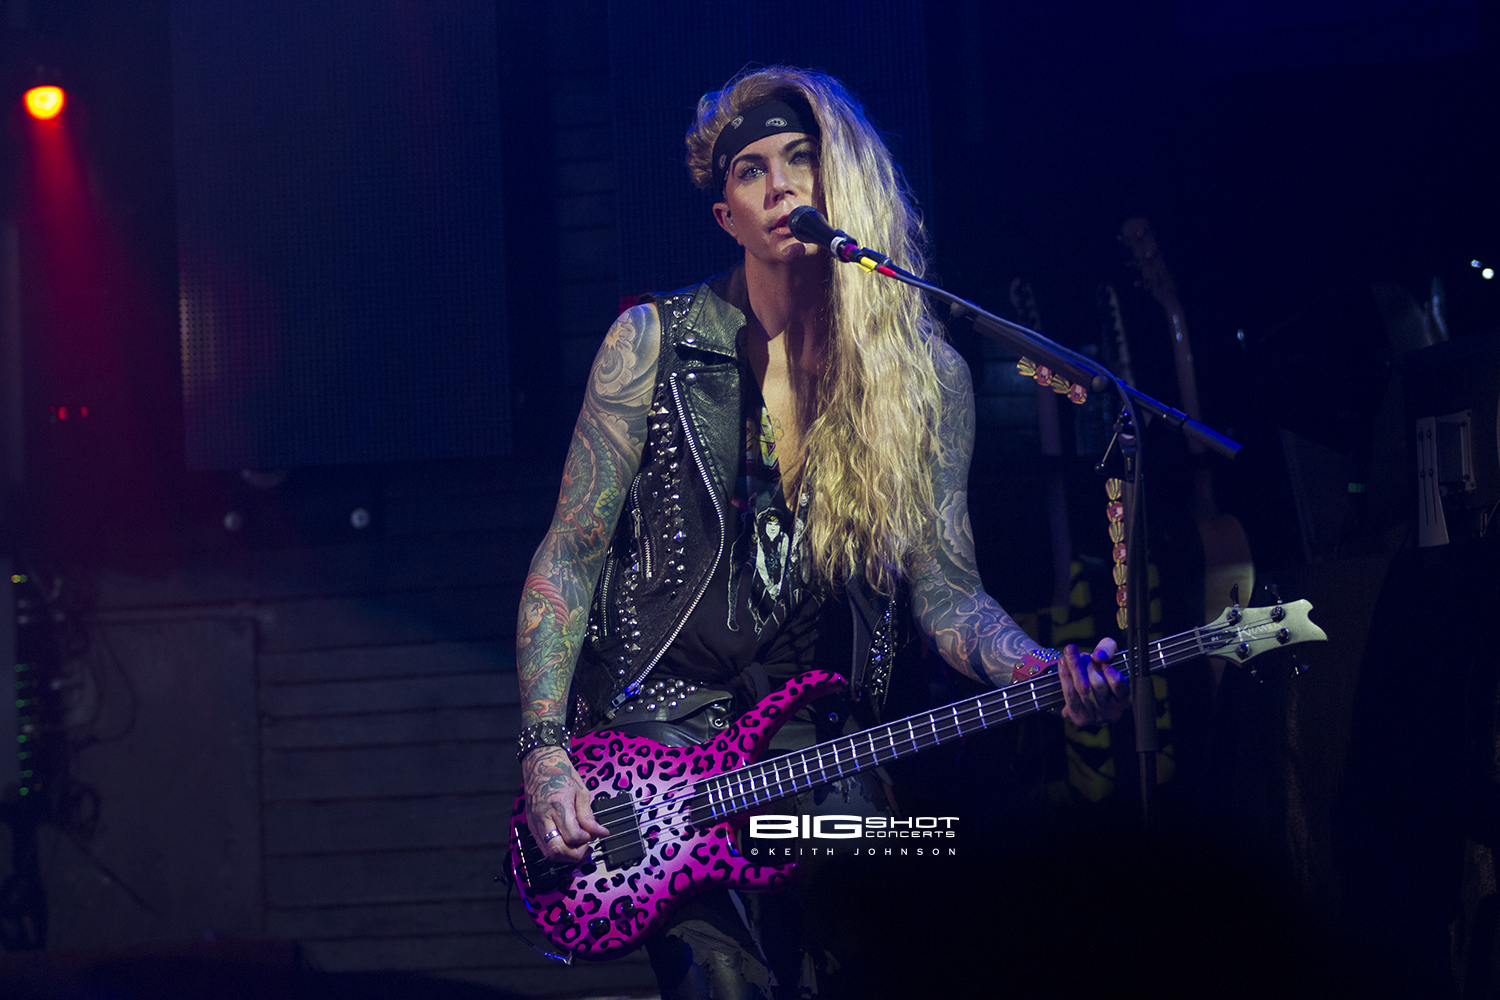 Lexxi Foxx of Steel Panther